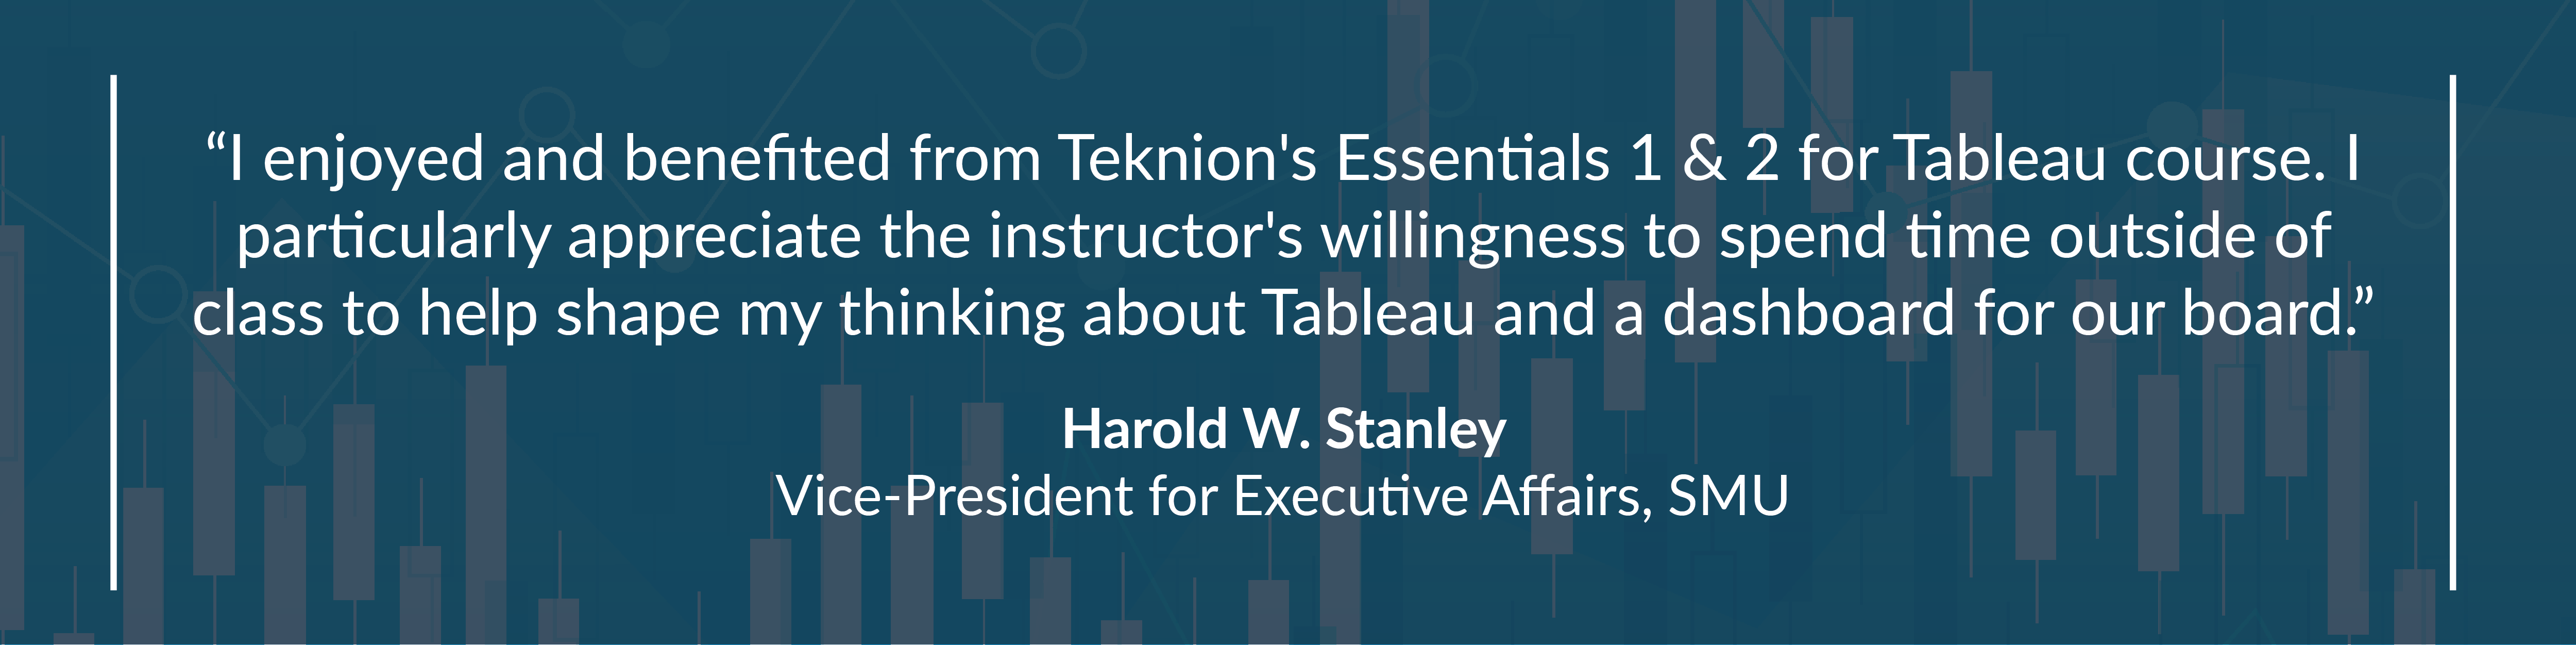 Essentials 1 &2 for Tableau SMU Quote with Background